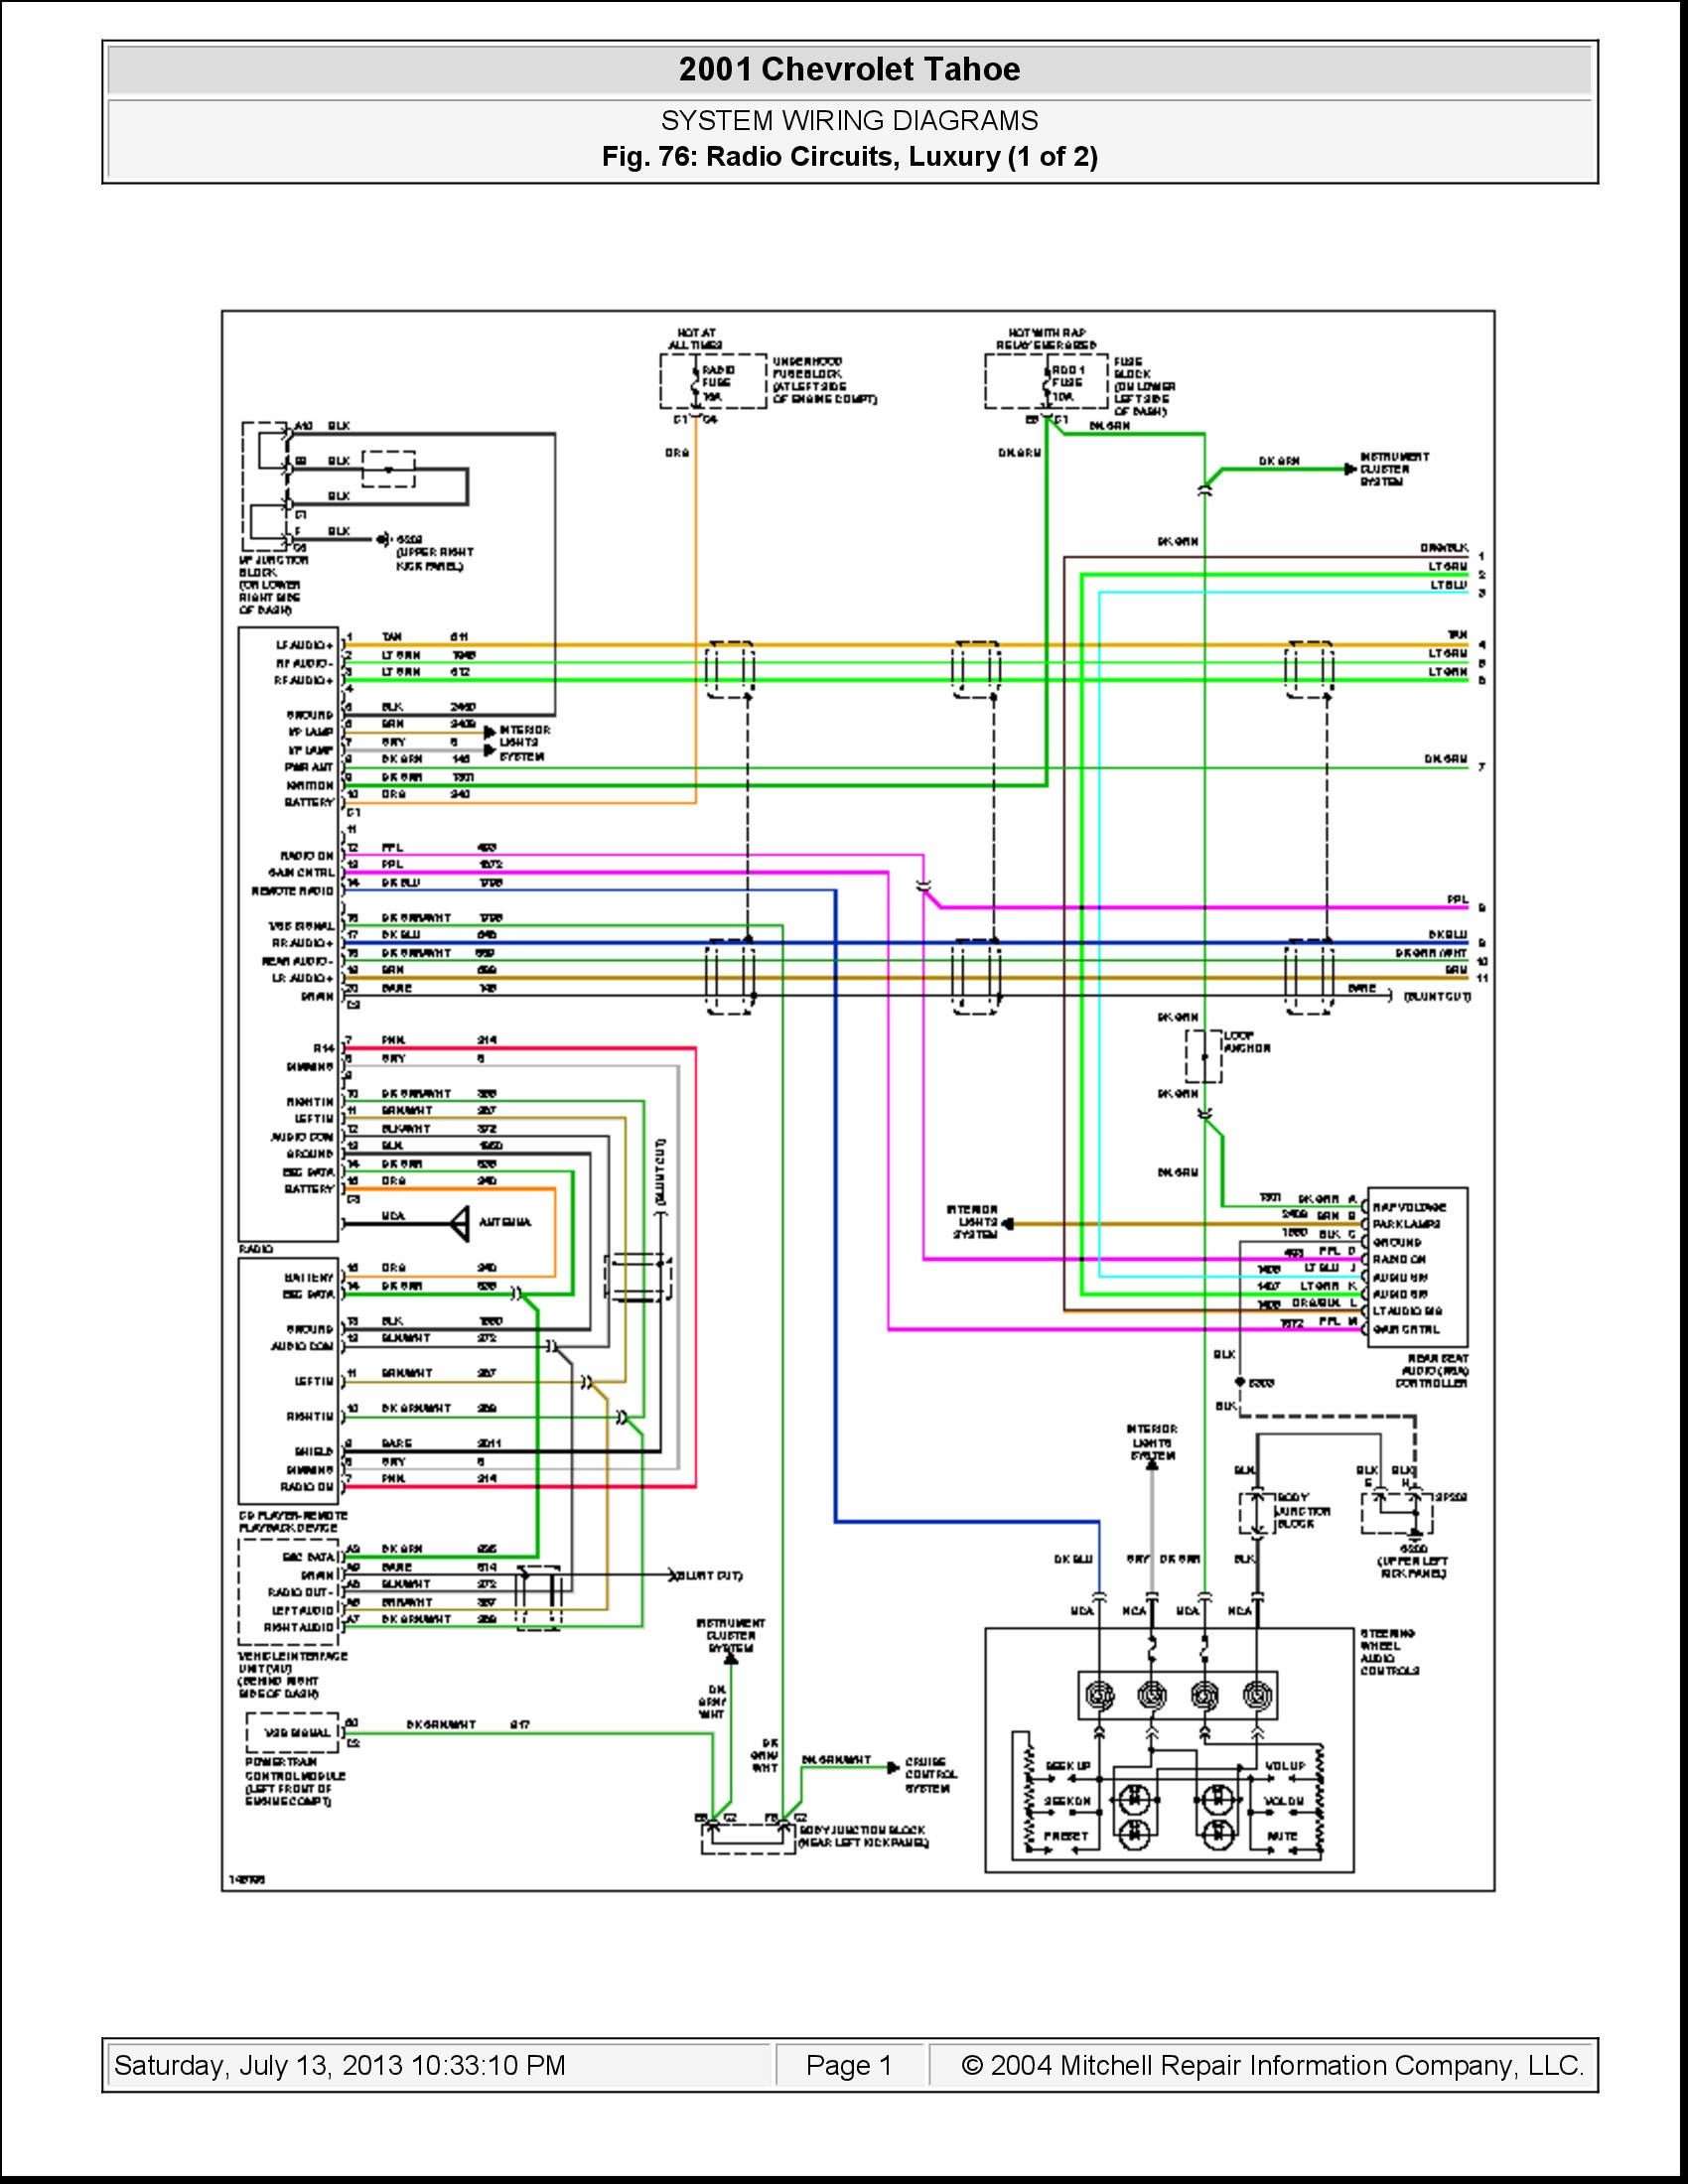 wiring diagram for 1999 gmc yukon - wiring diagram base style -  style.jabstudio.it  jab studio